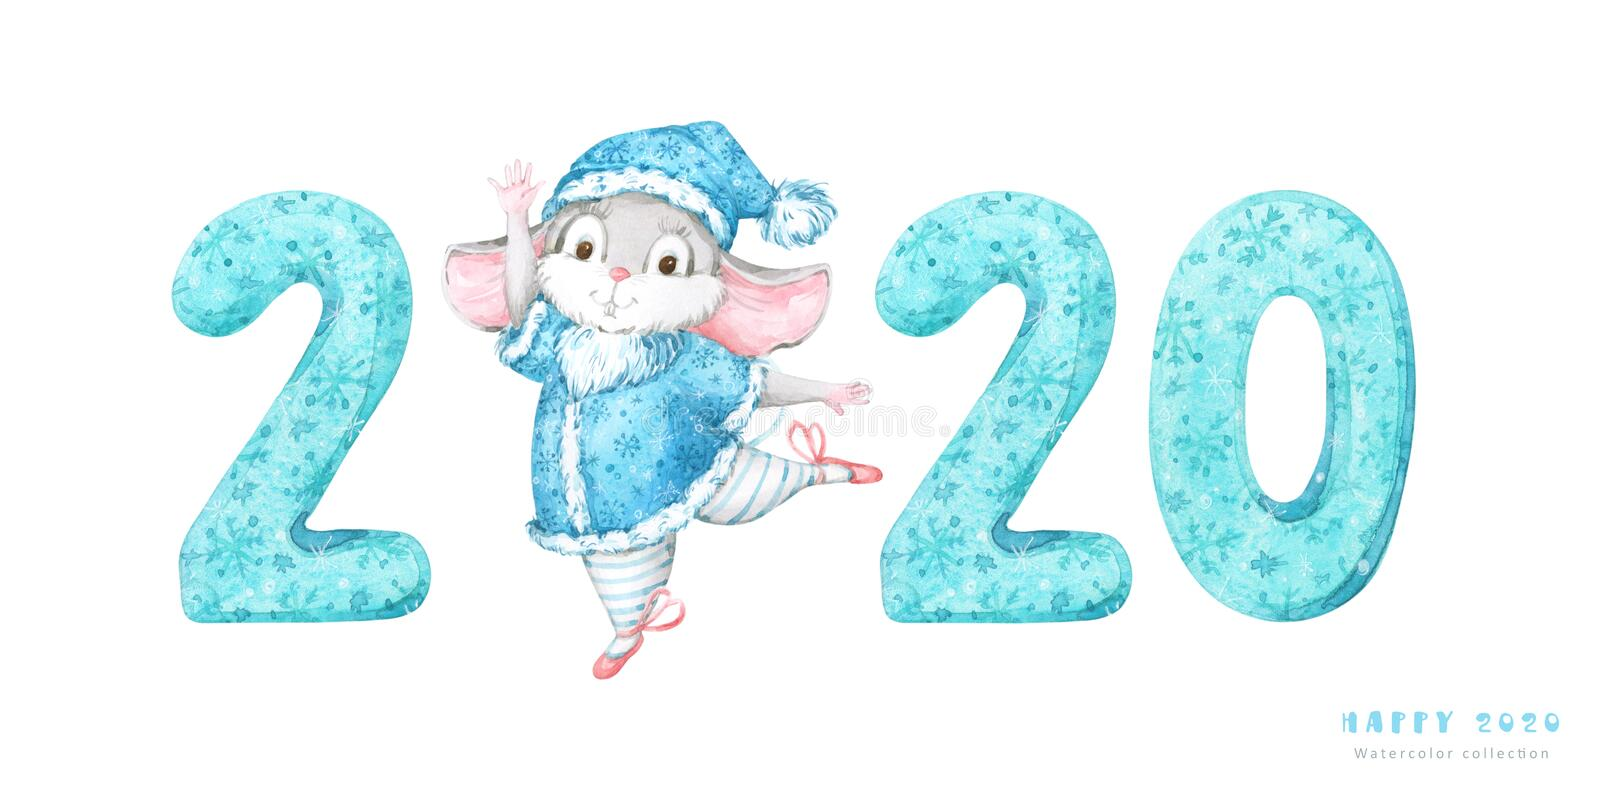 2020 Happy New Year banner with hand painted turquoise patterned numbers and cute dancing mouse, rat illustration on white backgro vector illustration